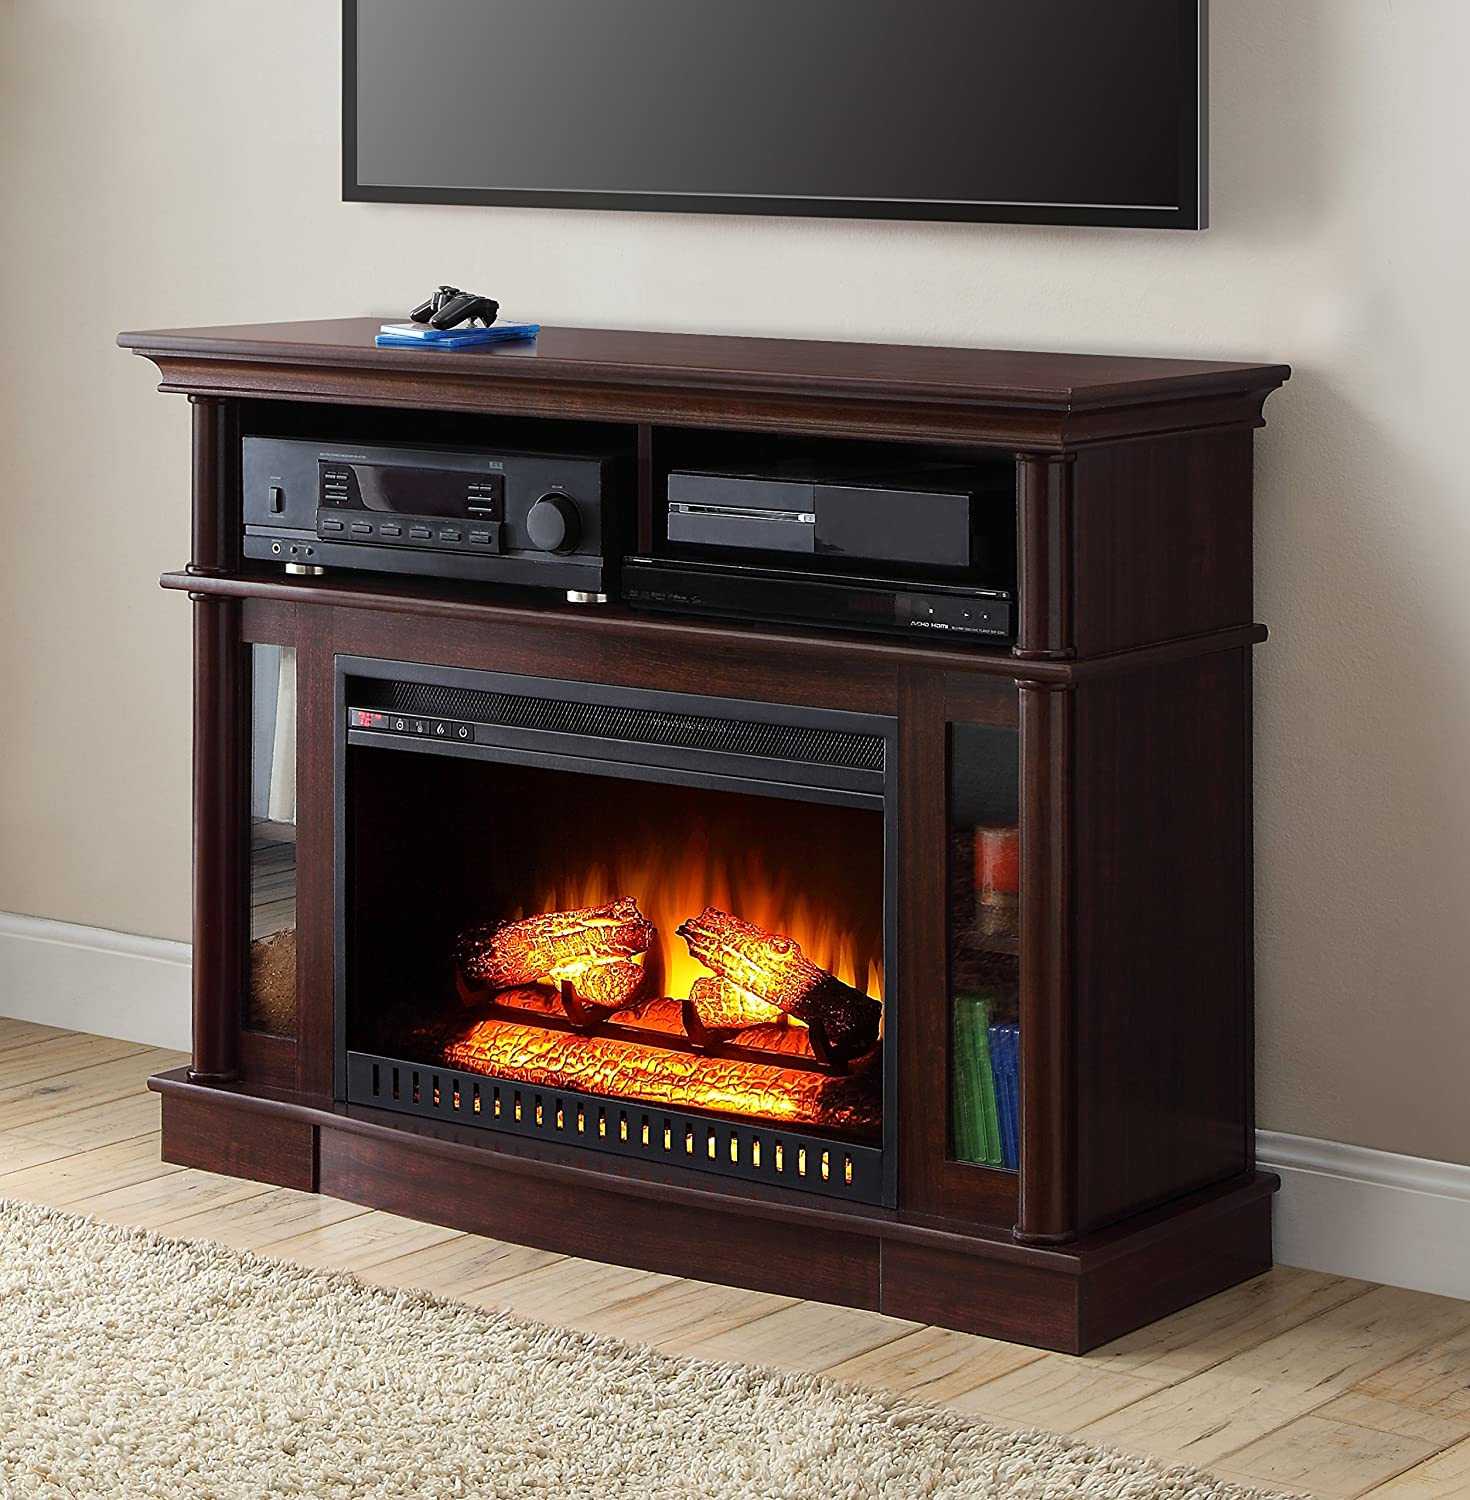 Cherry Finish Better Homes And Gardens Remote Control Ashwood Road Electric Fireplace Media Console For TV's Up To 45""